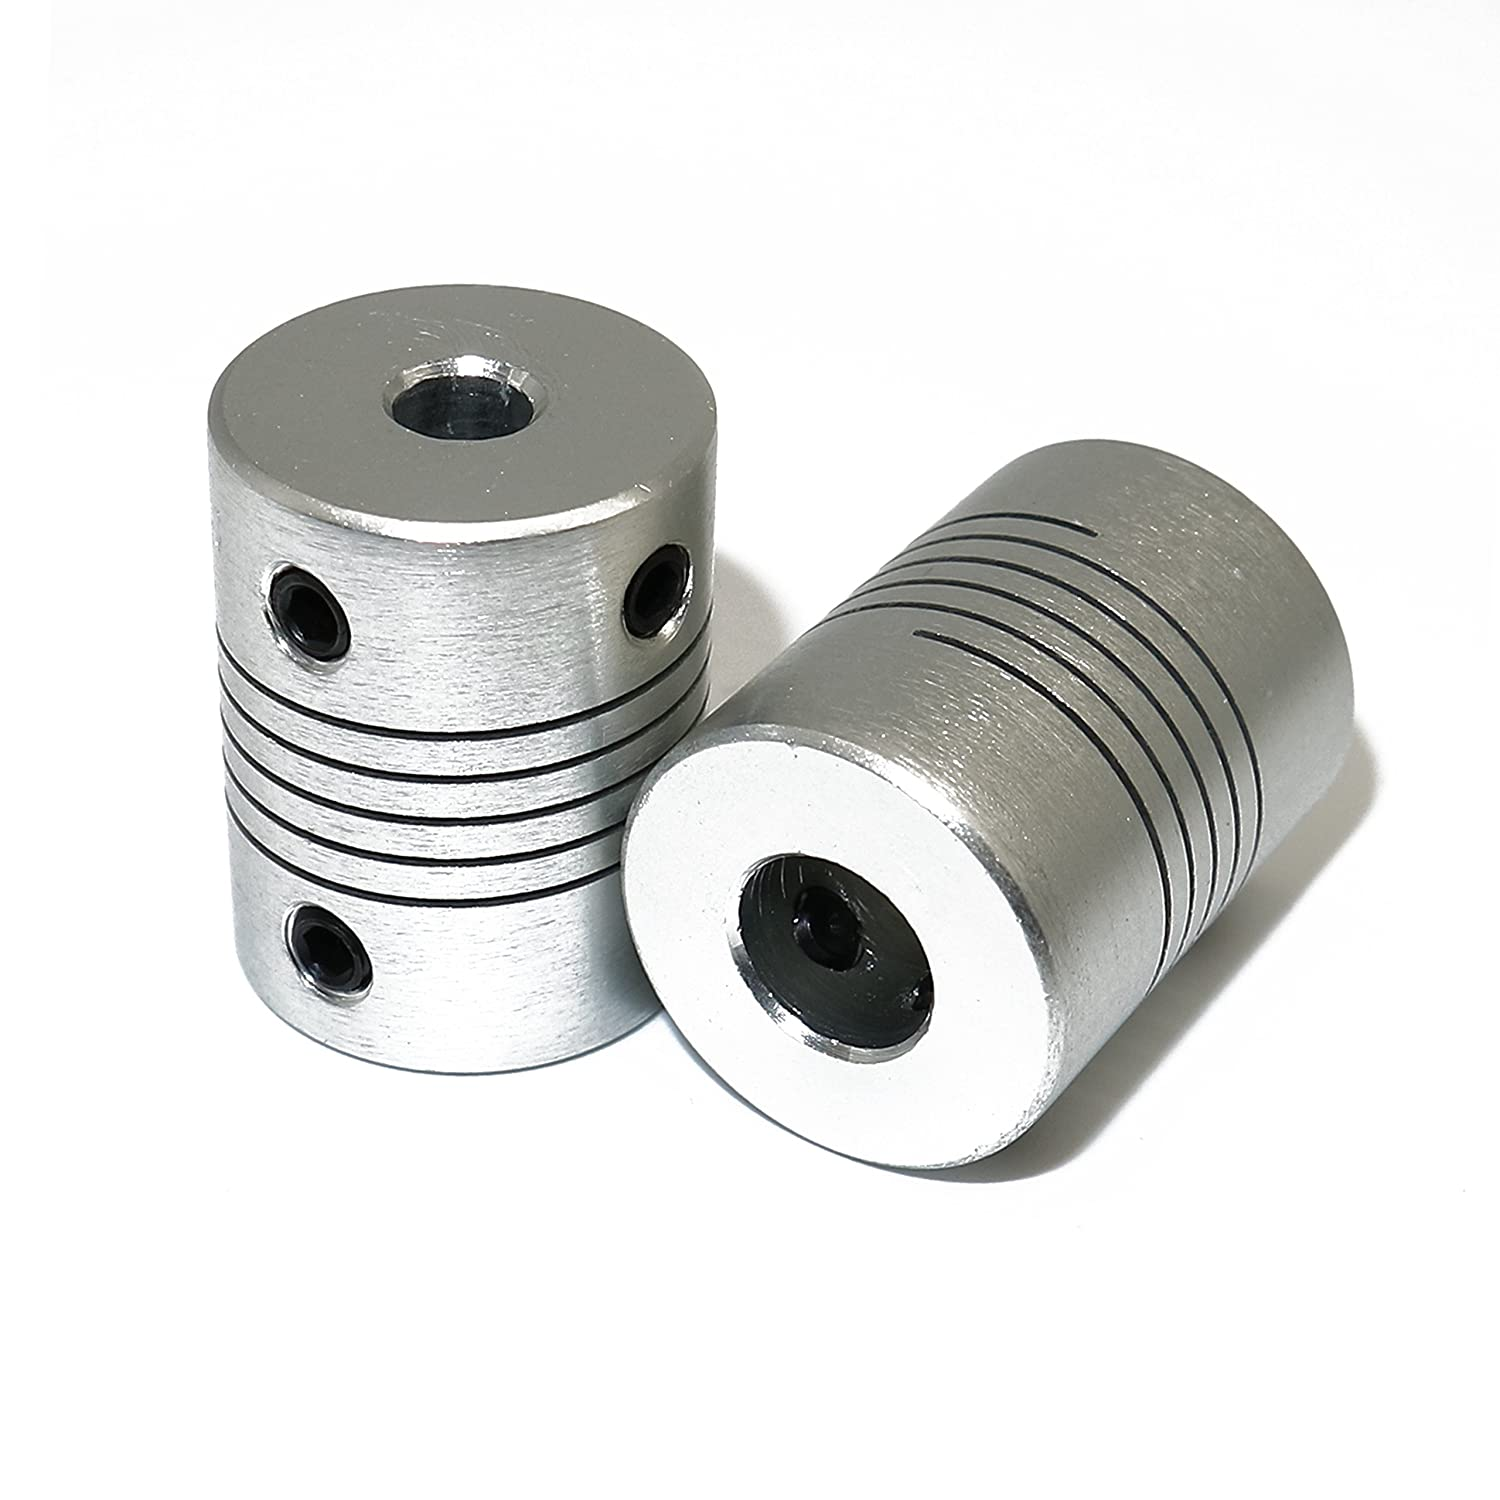 2 pcs flexible couplings 5 mm a 8 mm NEMA 17 eje para RepRap 3d ...